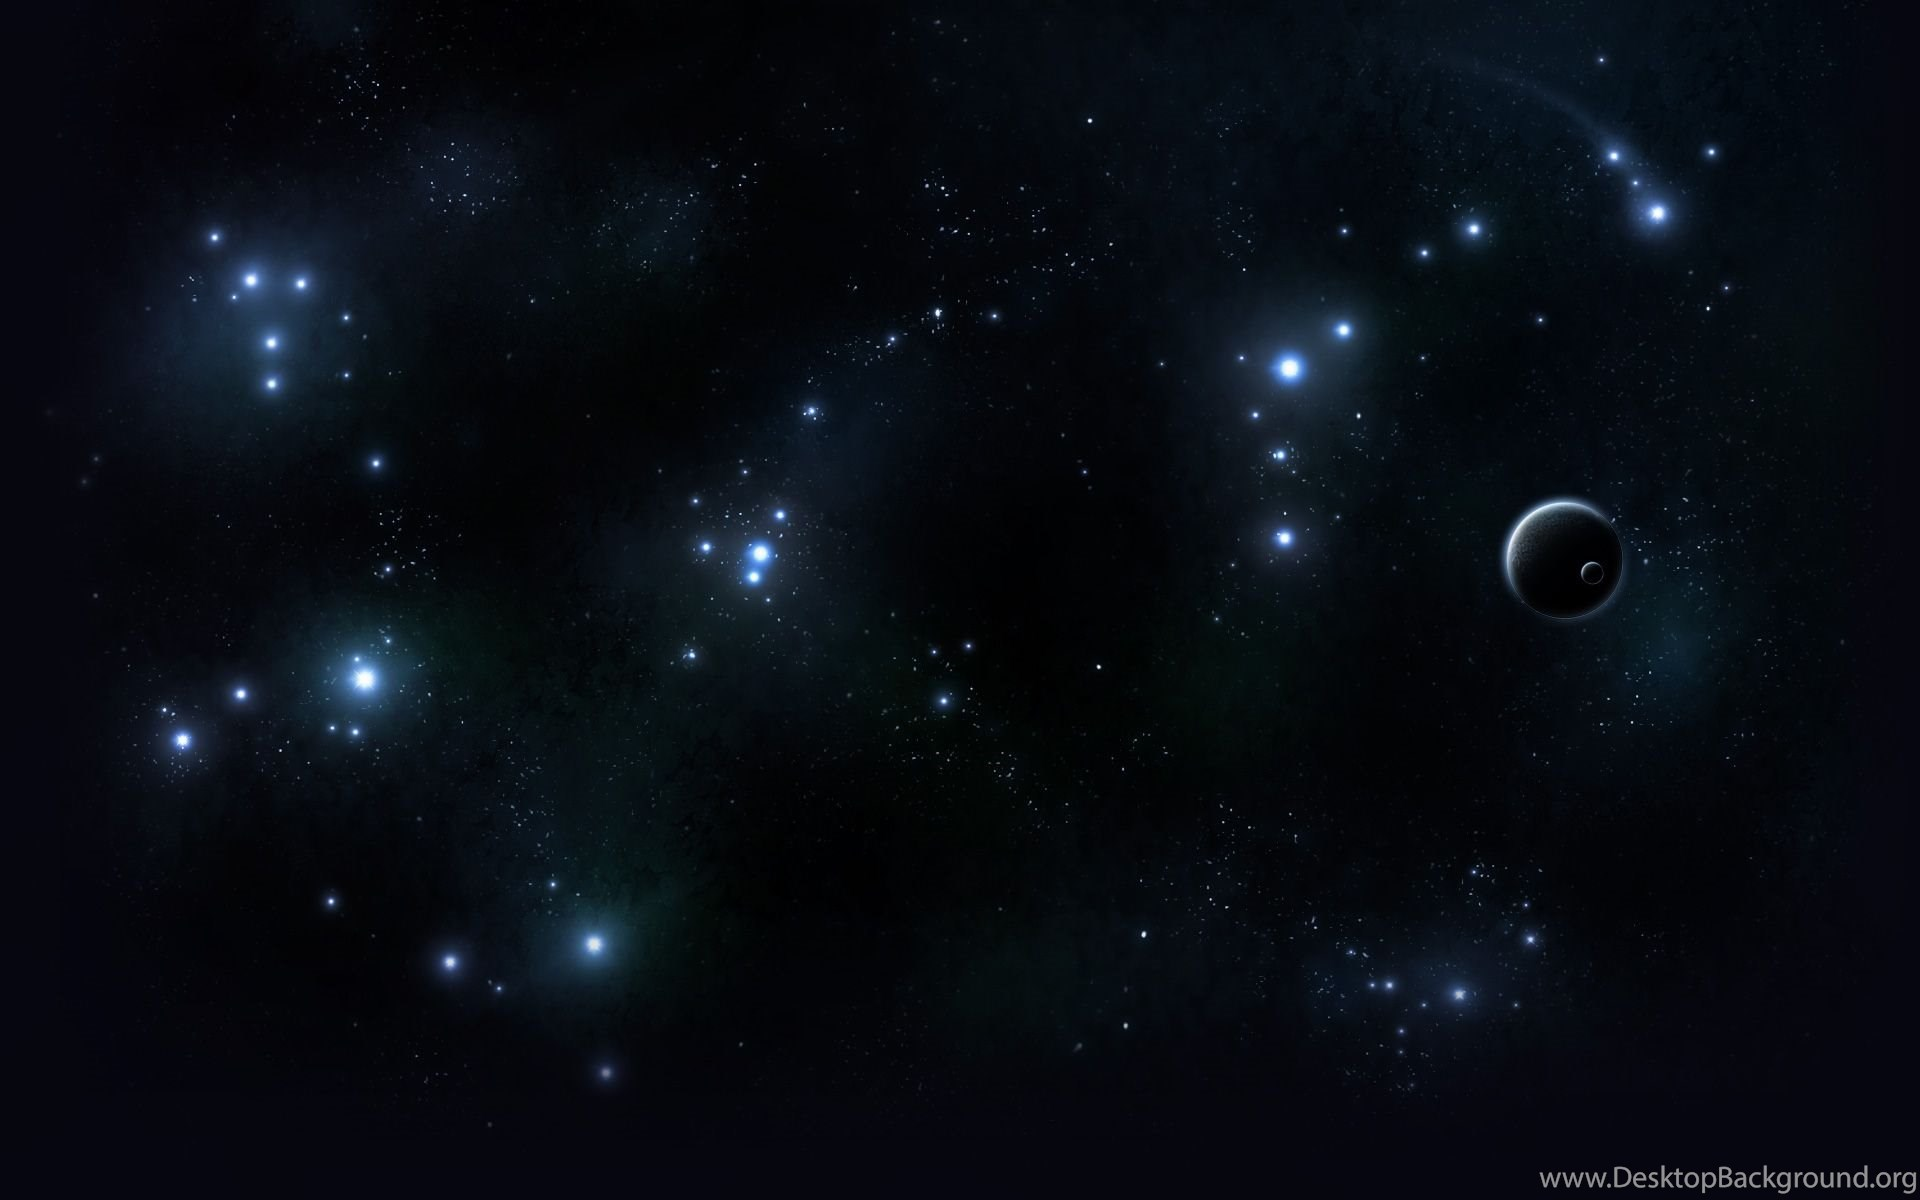 royalty free space images hd images 3 hd wallpapers desktop